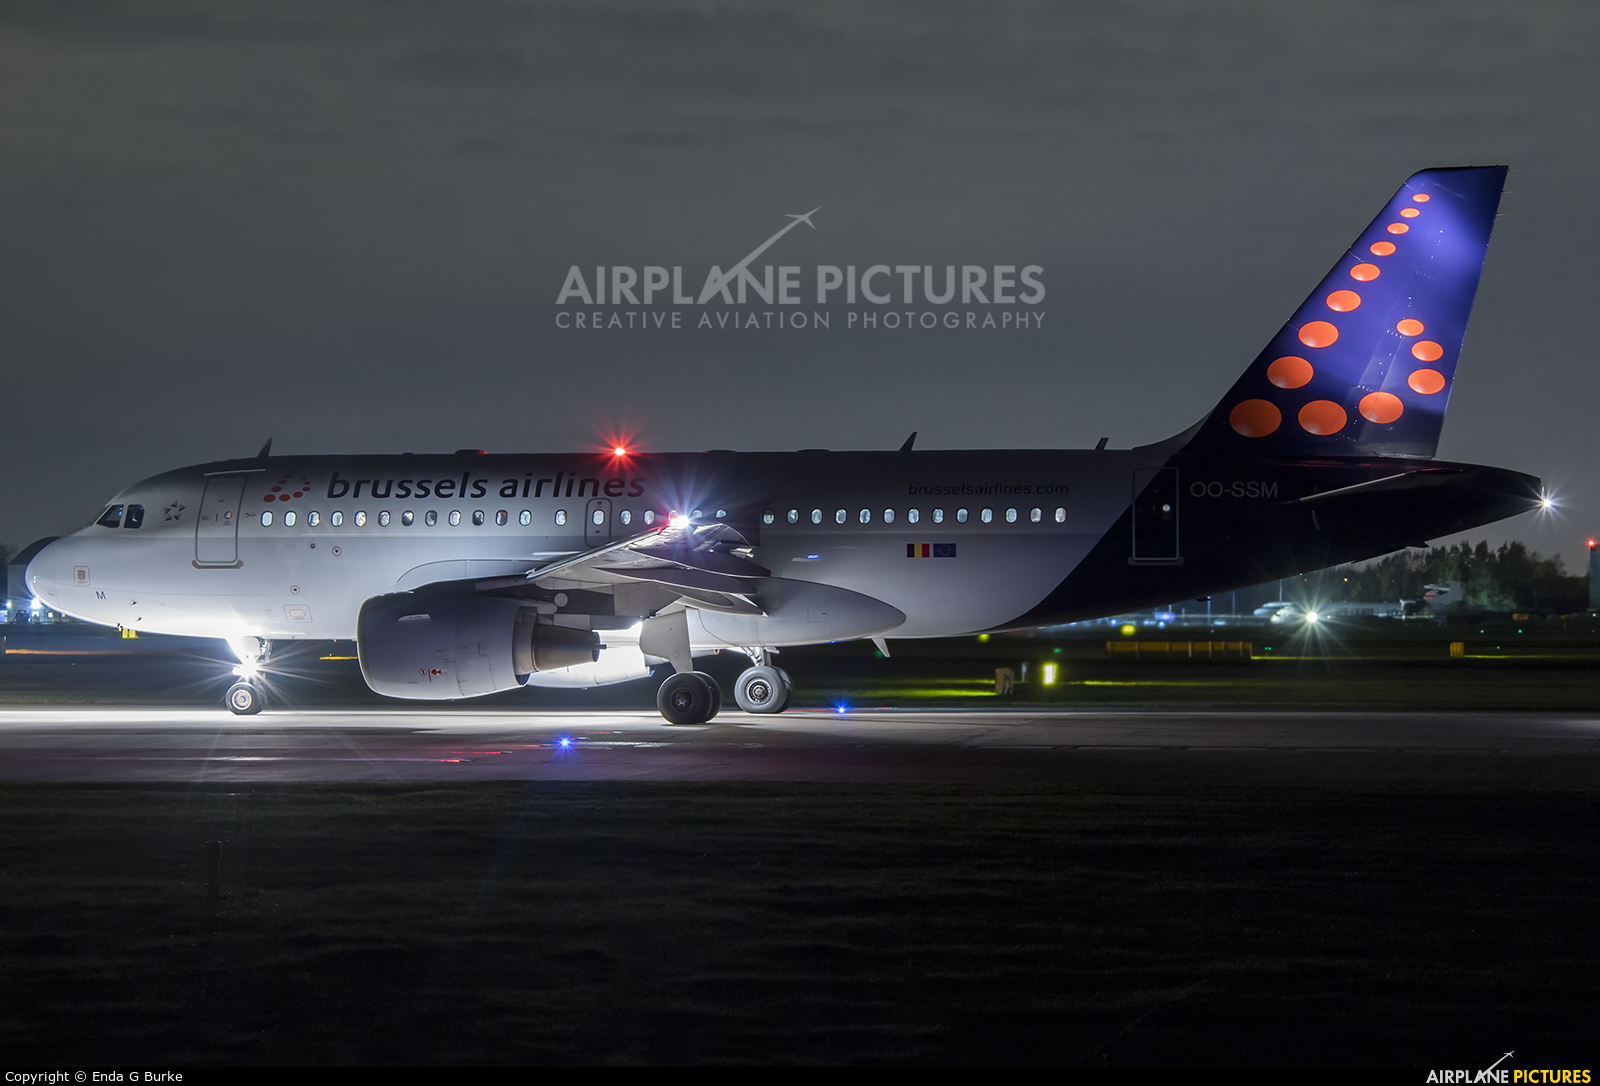 Brussels Airlines OO-SSM aircraft at Manchester